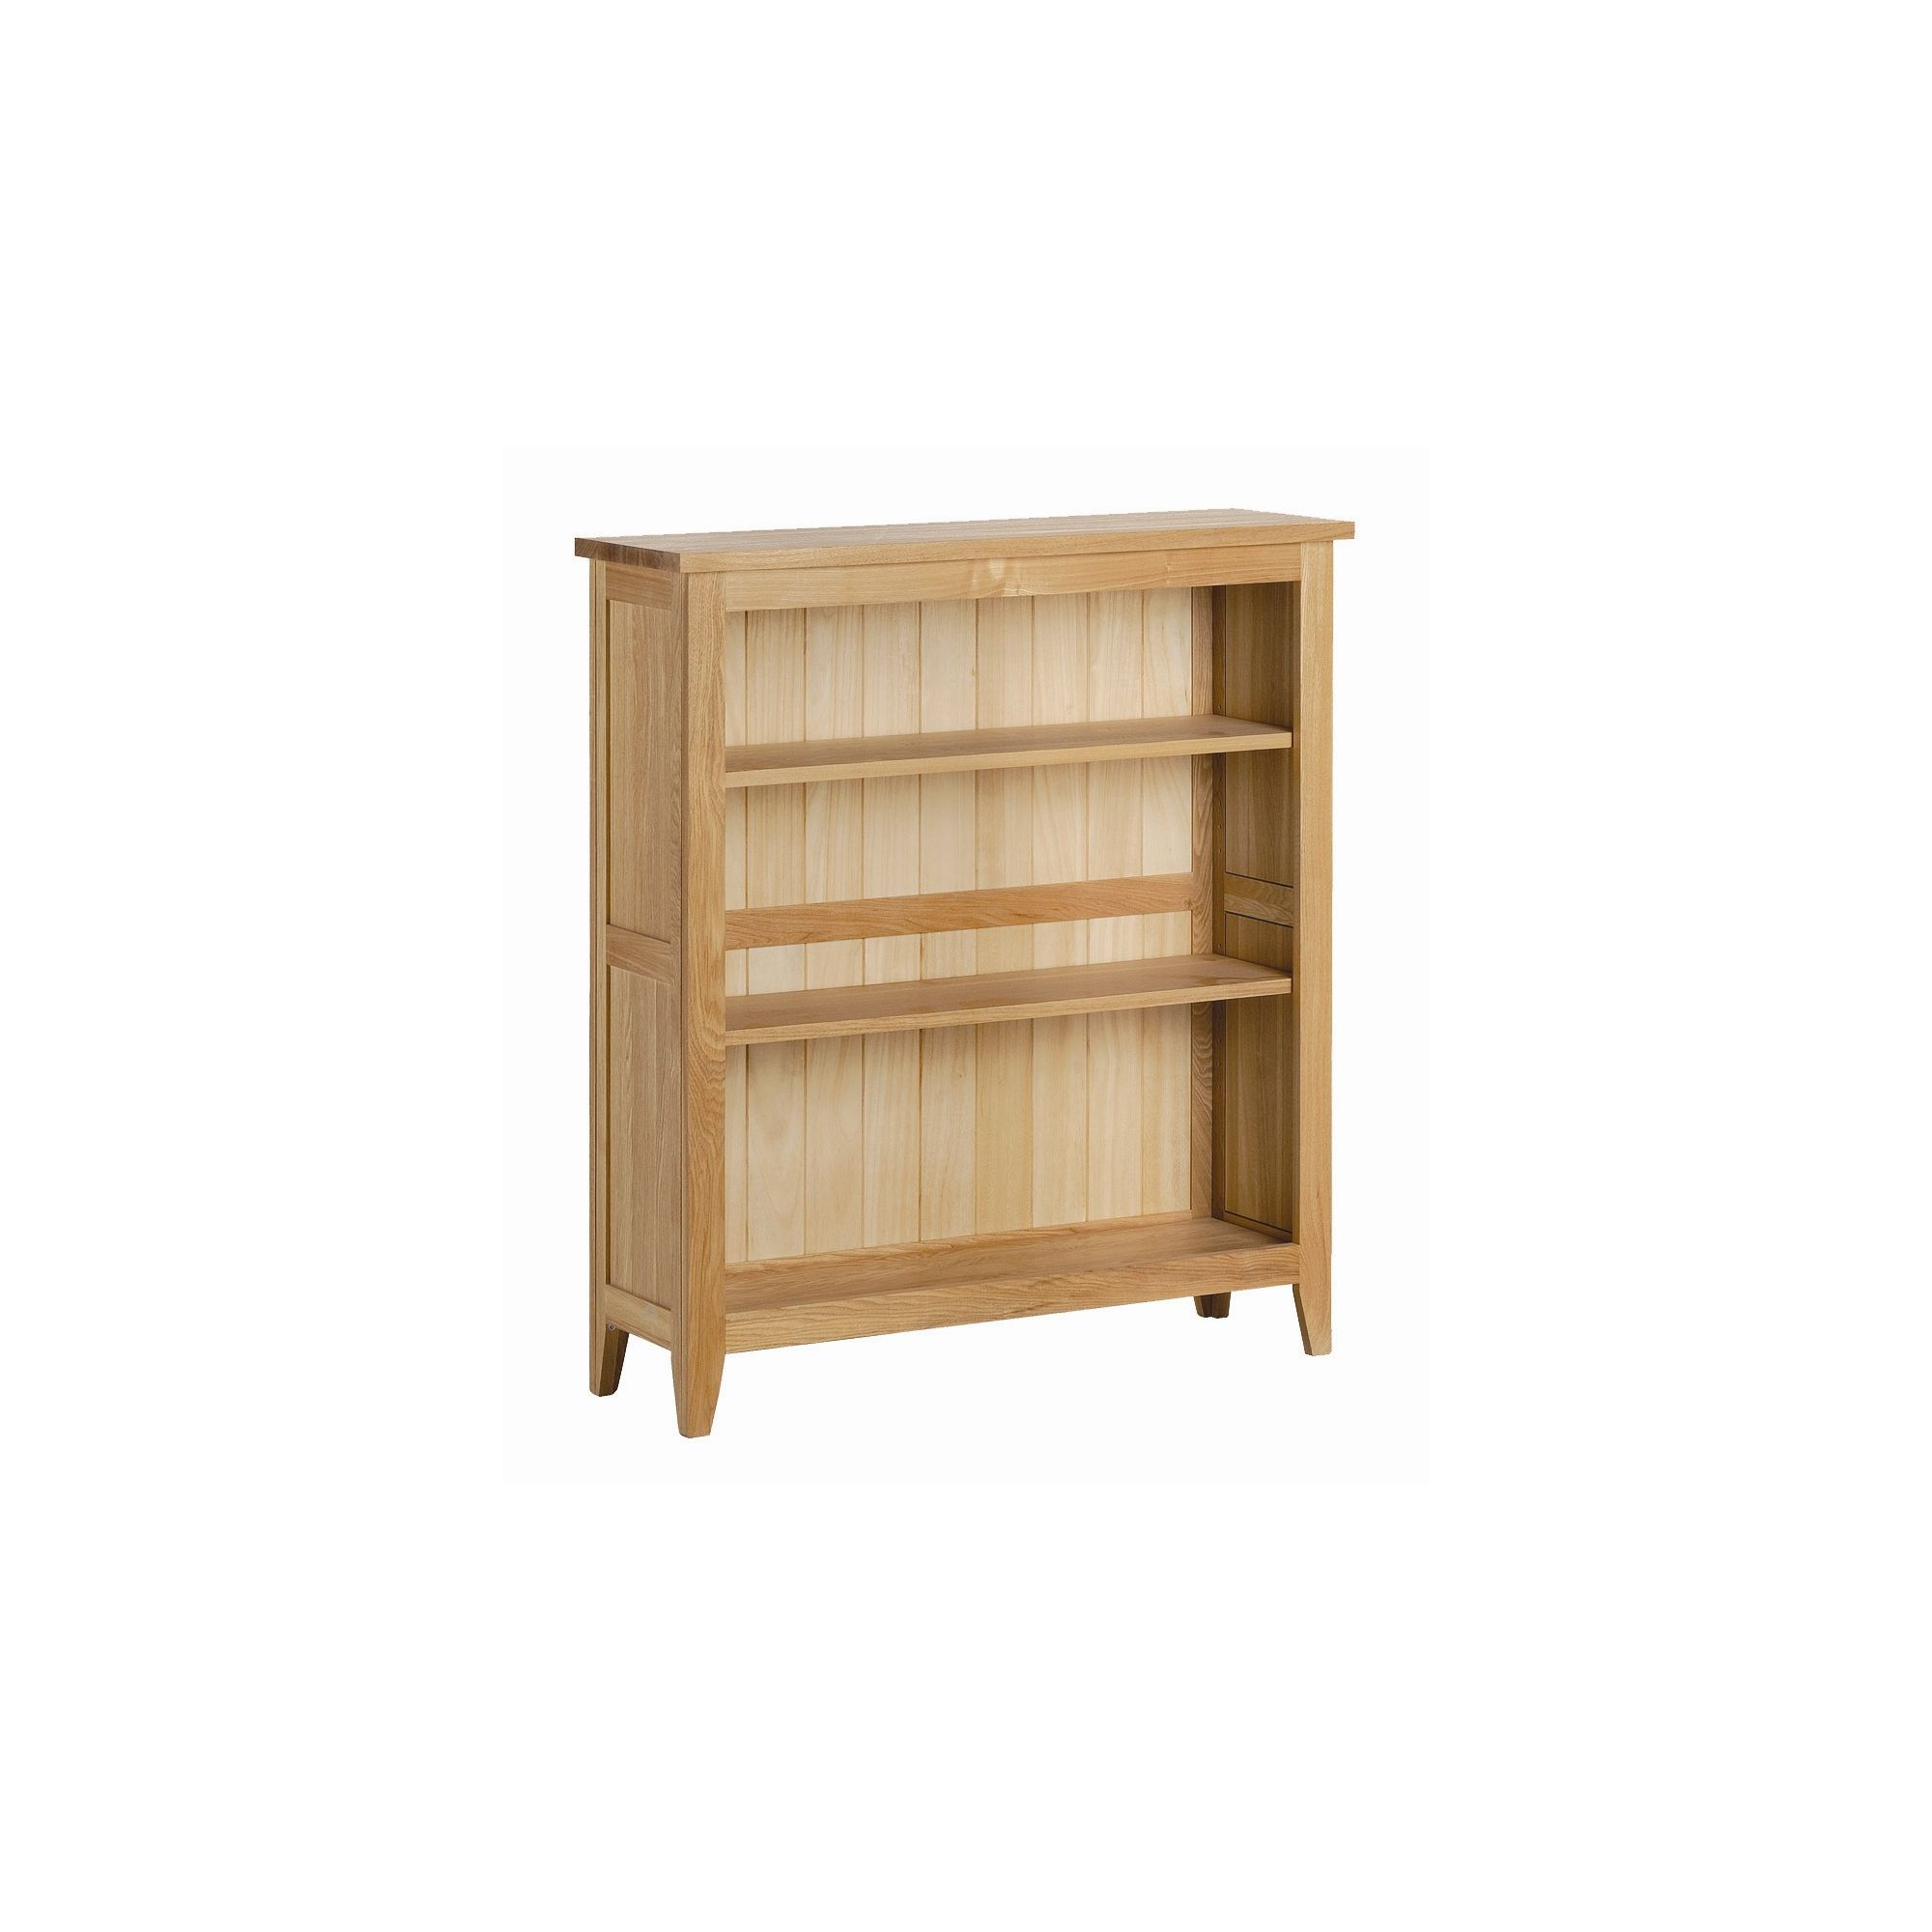 Kelburn Furniture Carlton Ash Small Bookcase at Tesco Direct